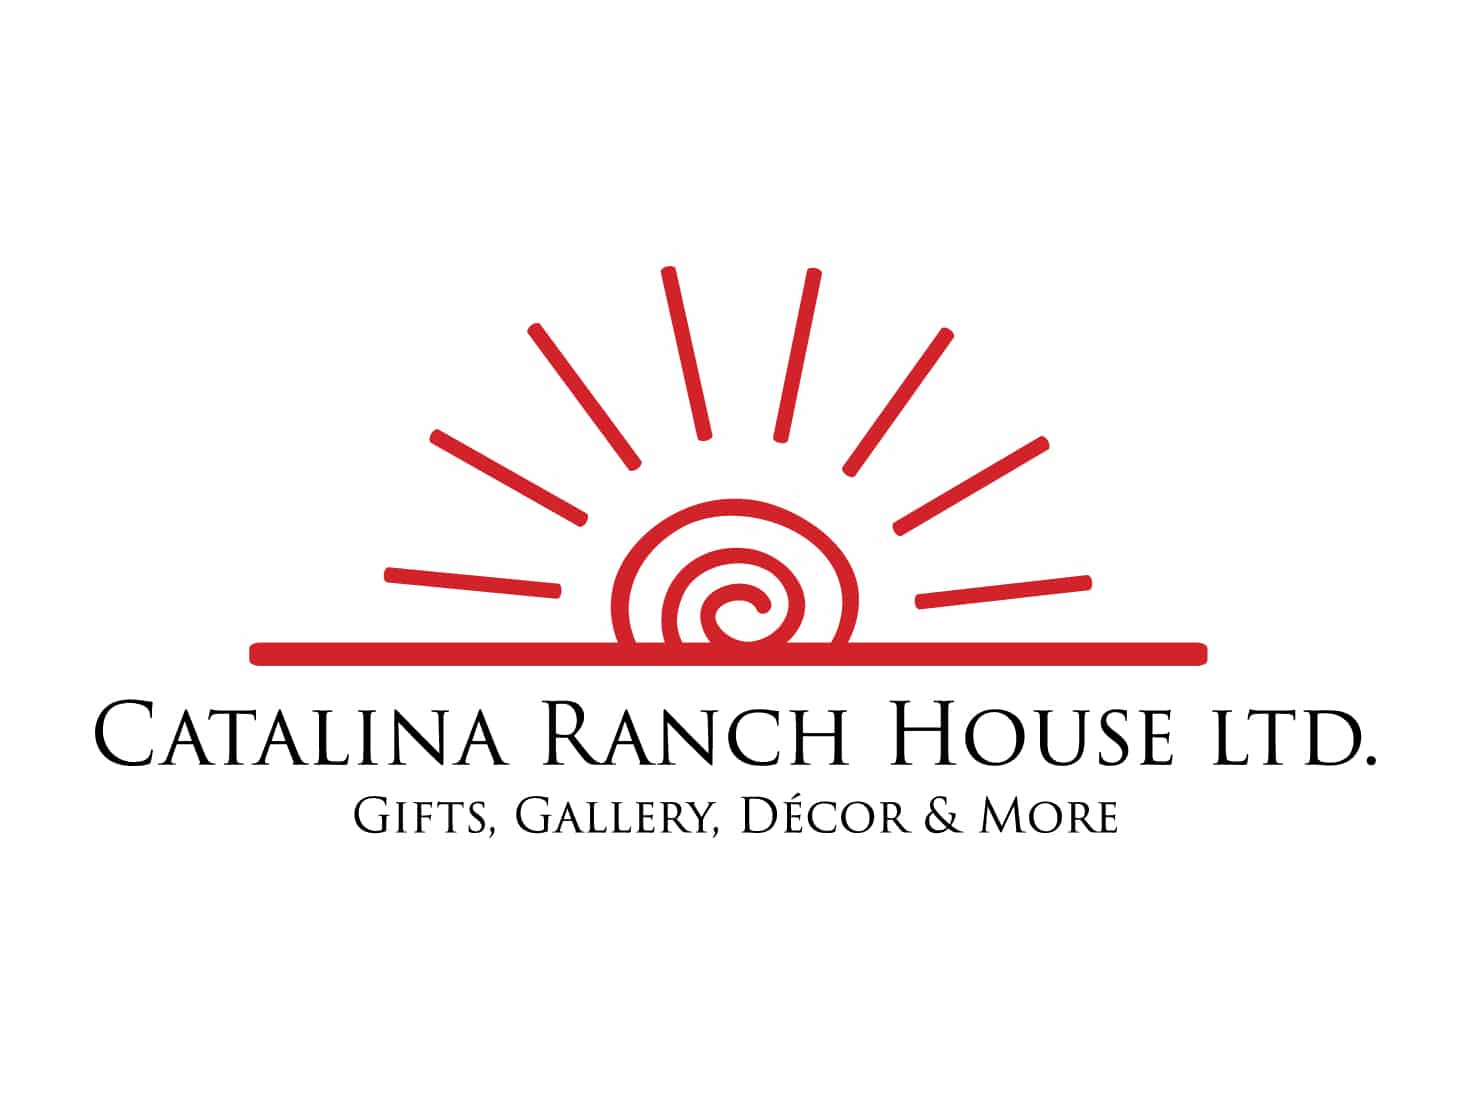 Catalina Ranch House